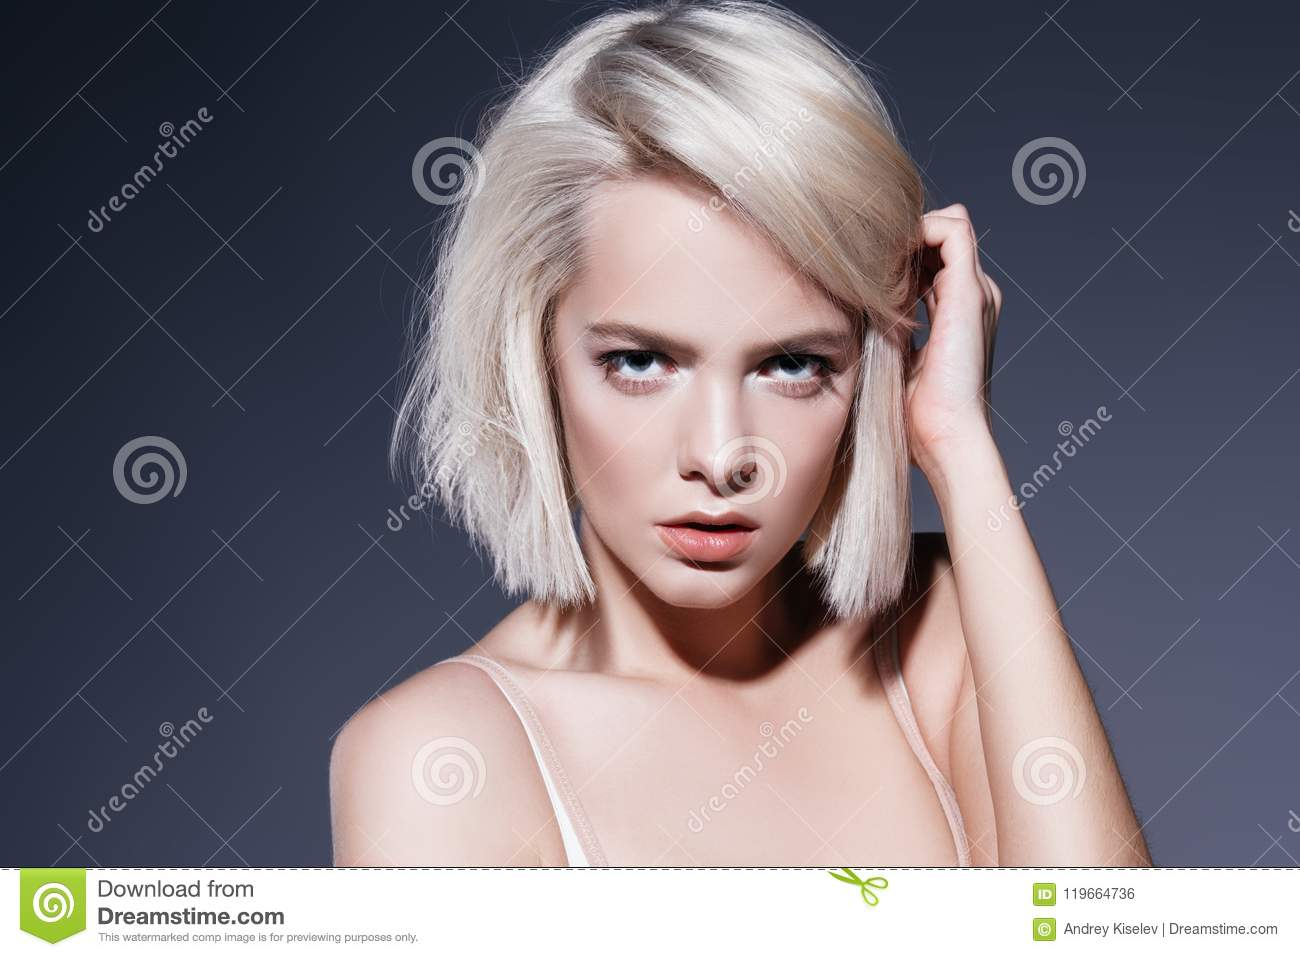 31f4b5494 Haircuts for short hair stock photo. Image of beauty - 119664736